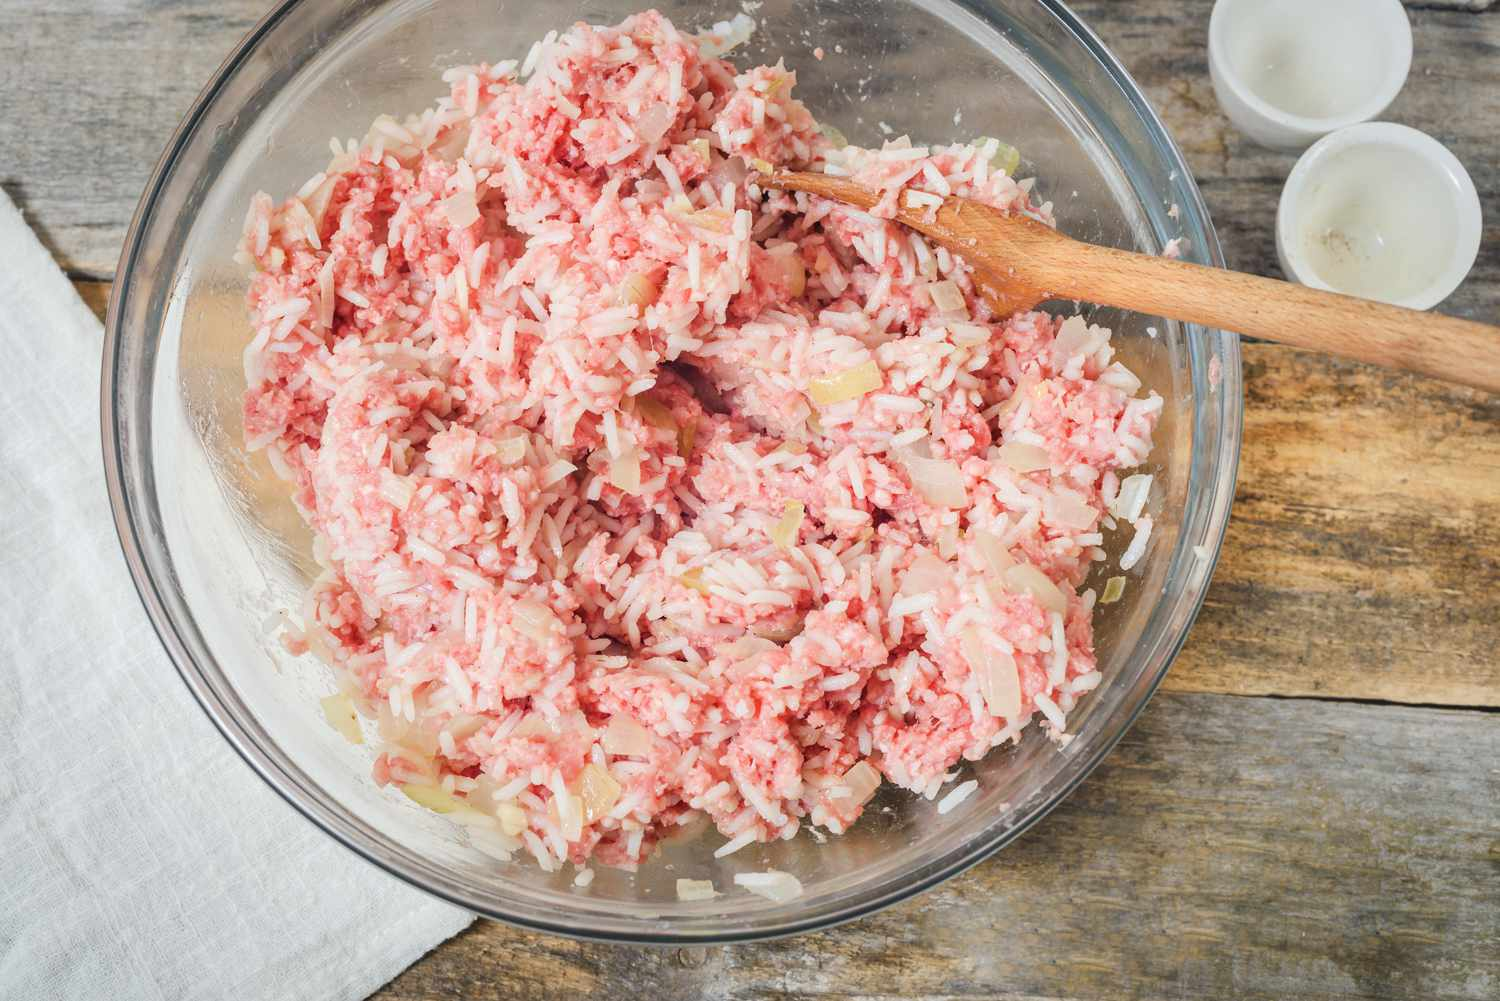 Mixed onion, meat, and rice in a bowl